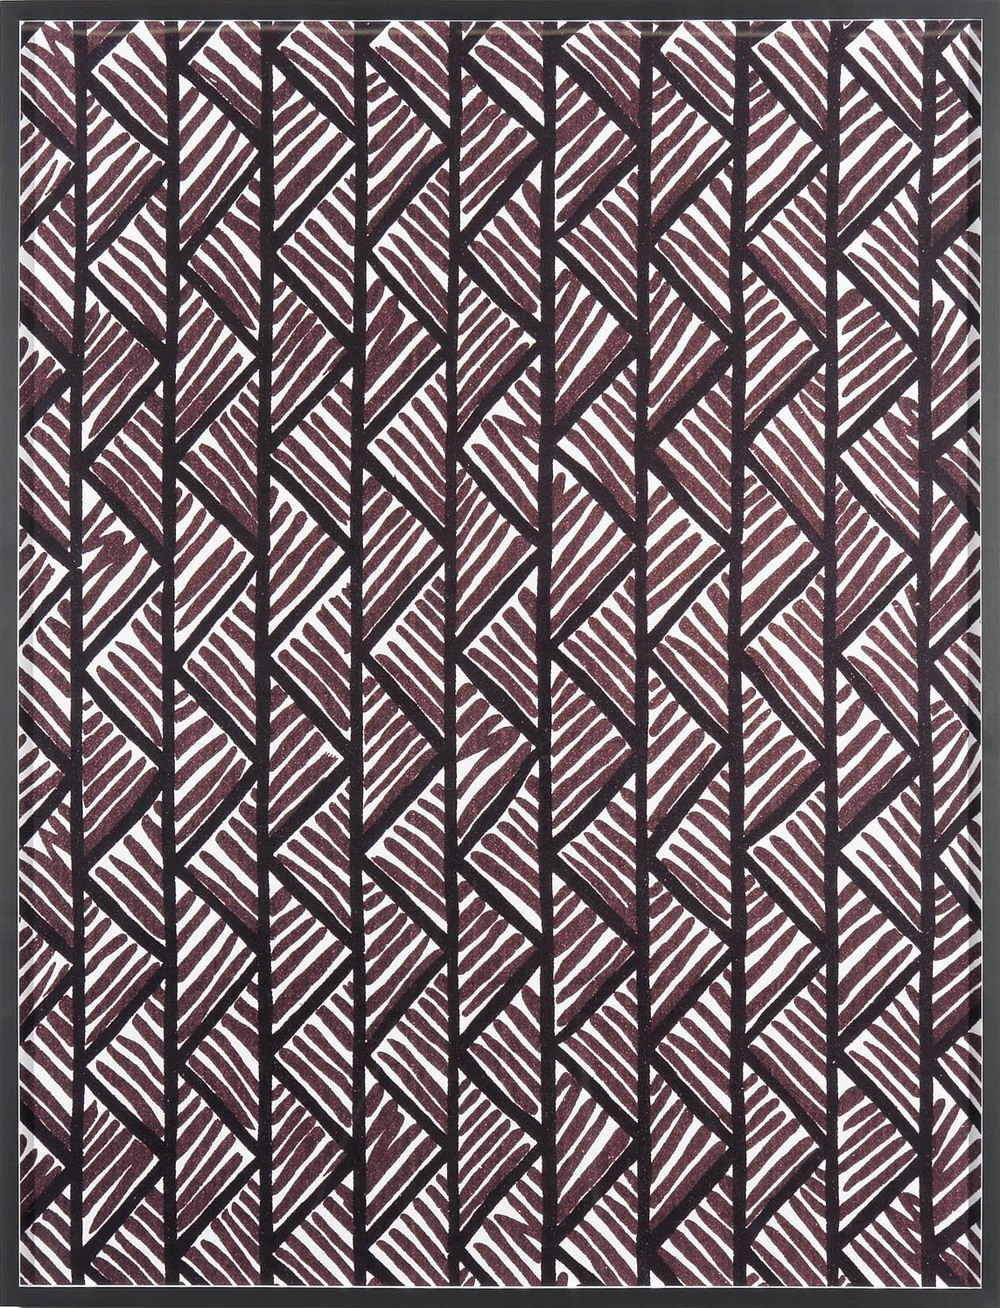 Annette Kelm Big Print #1 (Lahala Tweet - cotton chevron, fall 1949 design Dorothy Draper, courtesy Schumacher &Co) 2007 C-Print: 130.5 x 100.5 cm